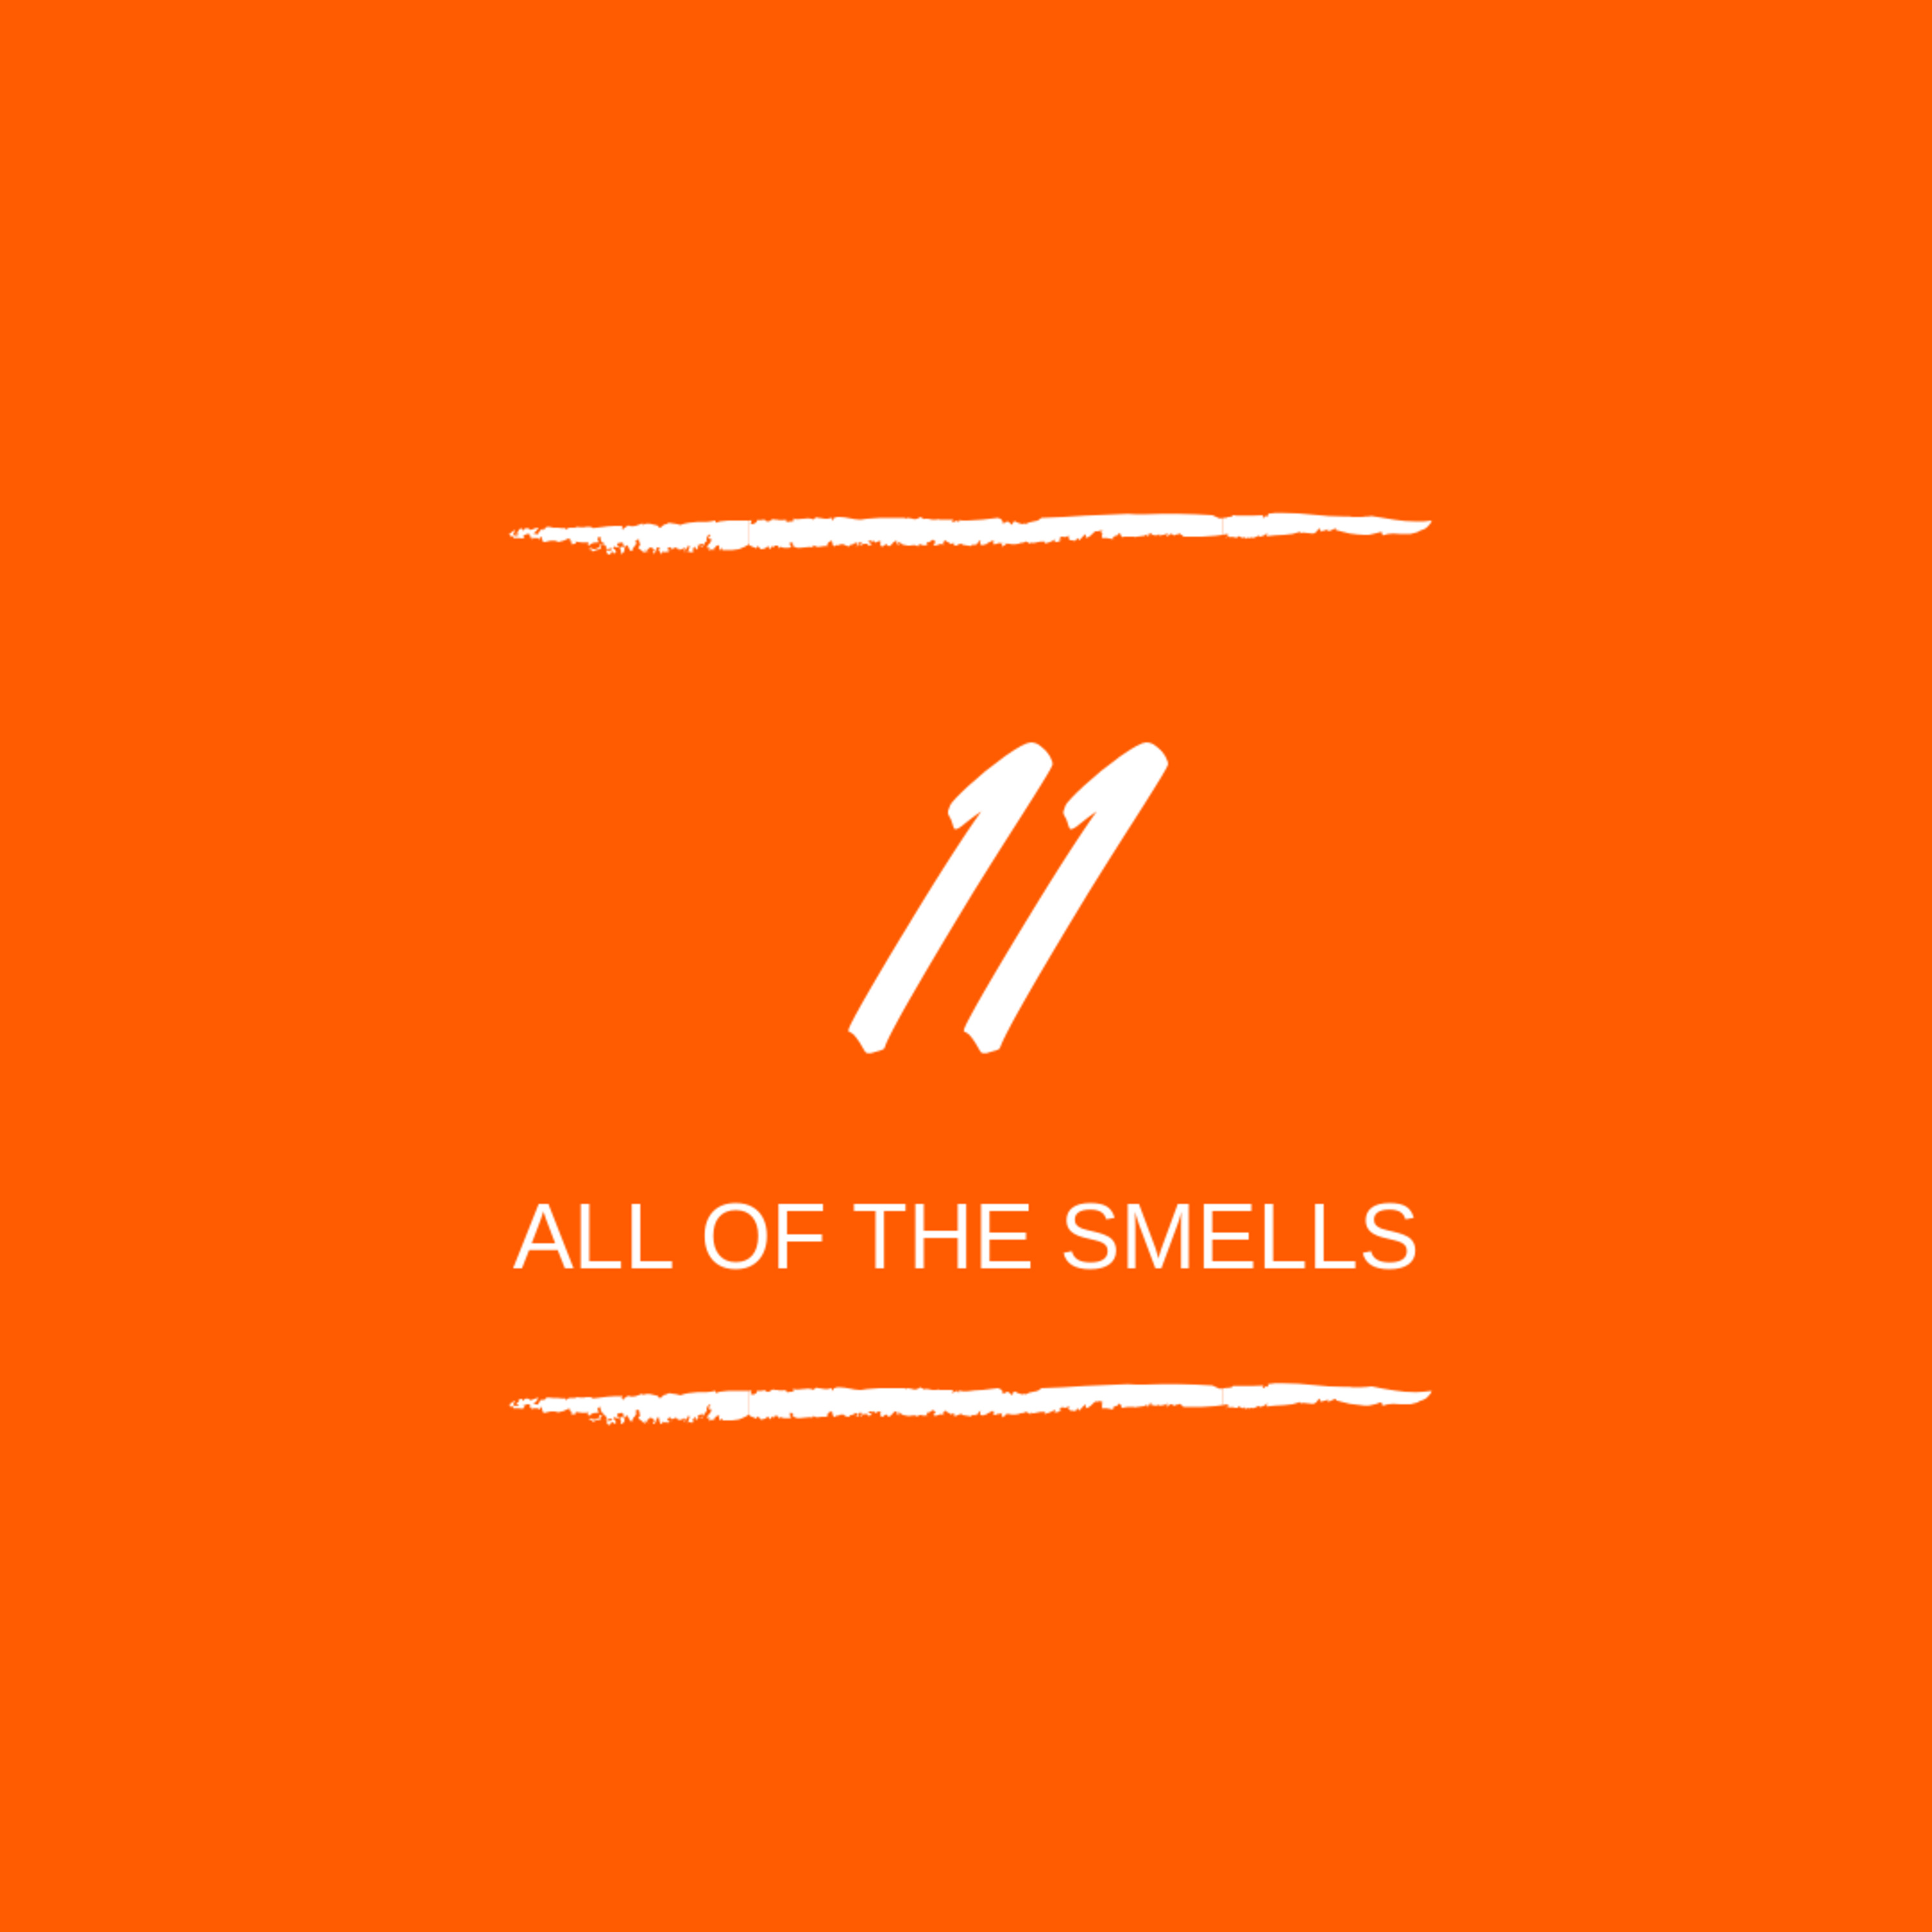 Day 11 : 👃🏼 All of the smells...